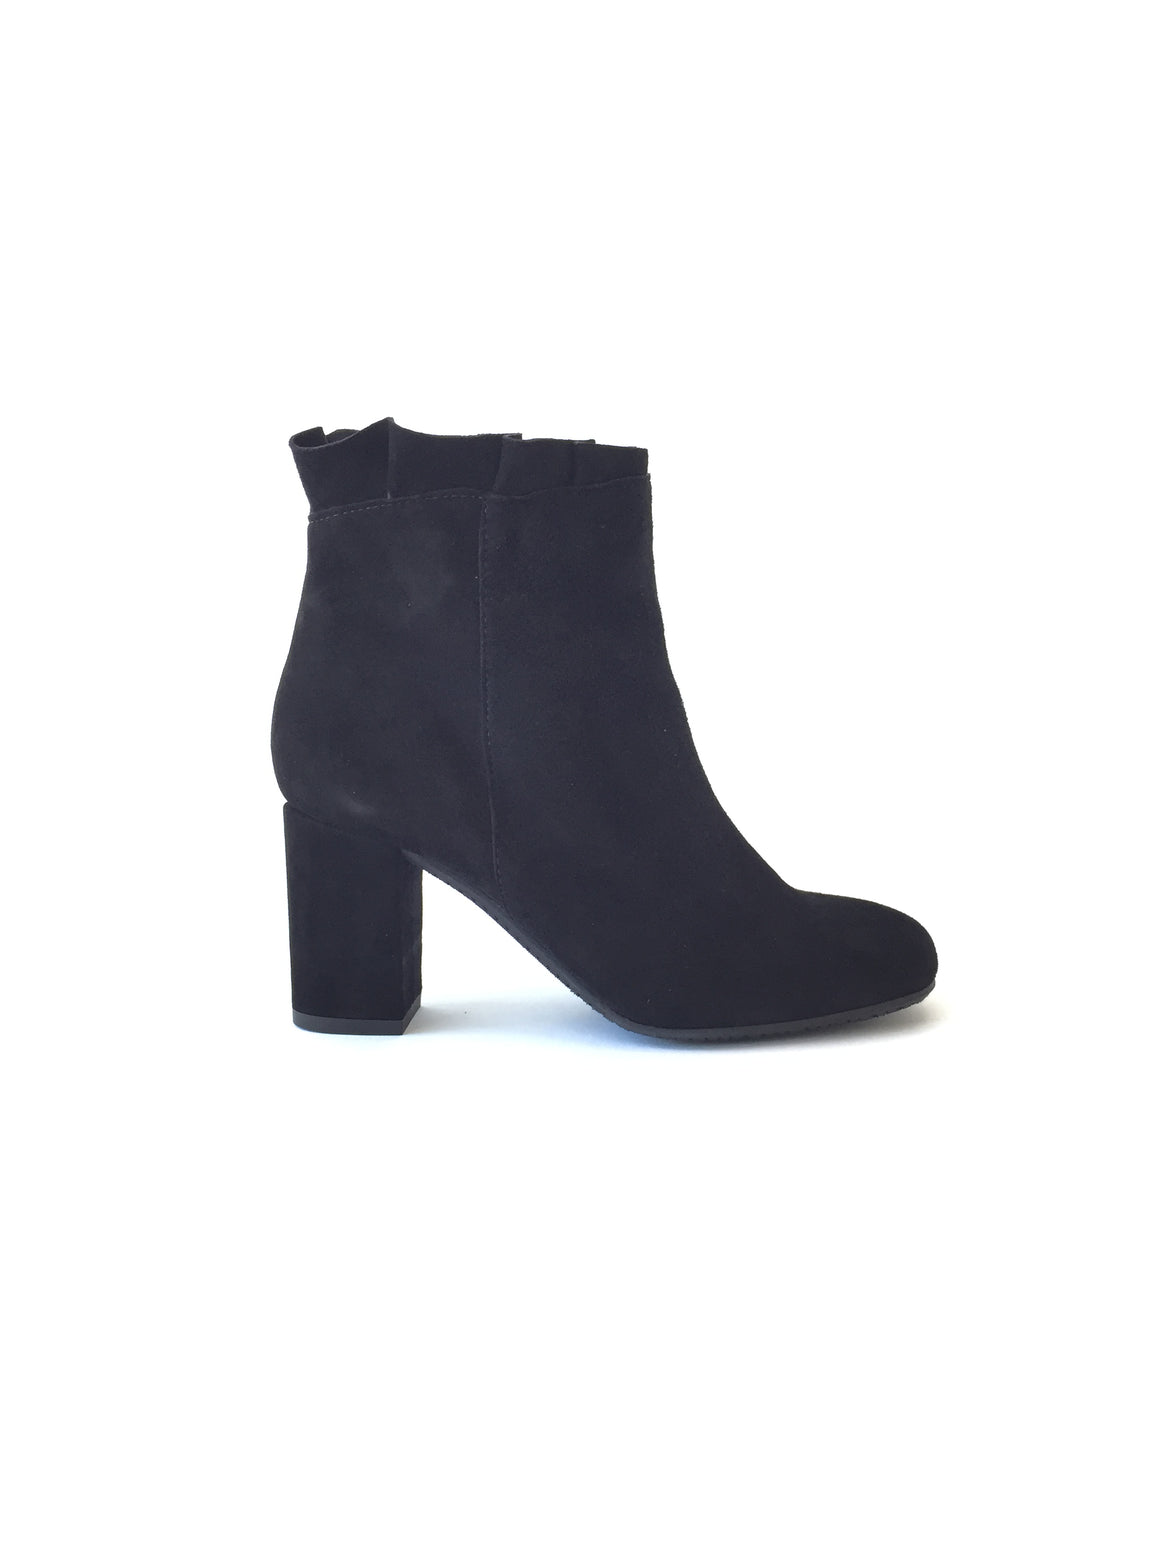 Blush Boot Black